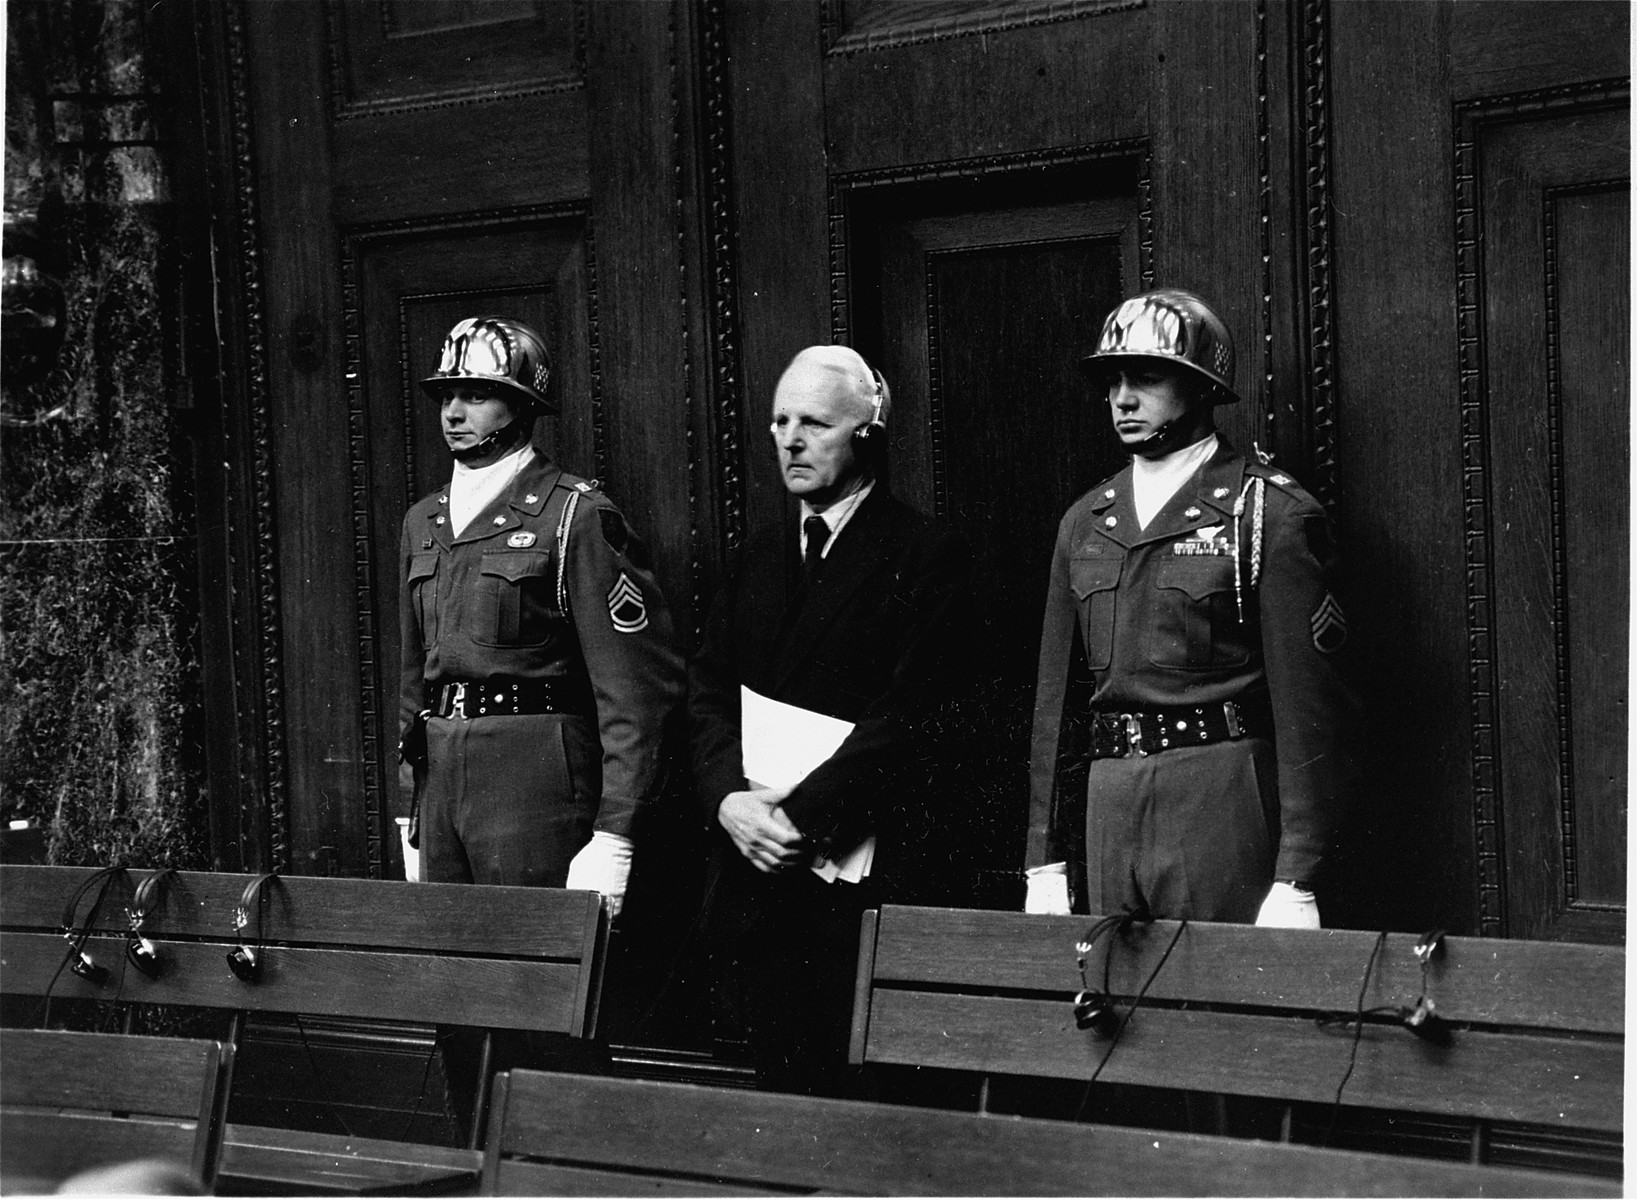 Defendant Ernst Von Weizsaecker, flanked by two guards from the U. S. First Infantry Divisions's 16th Infantry Regiment, listens his sentence of 7 years imprisonment following the conclusion of the Ministries Trial.